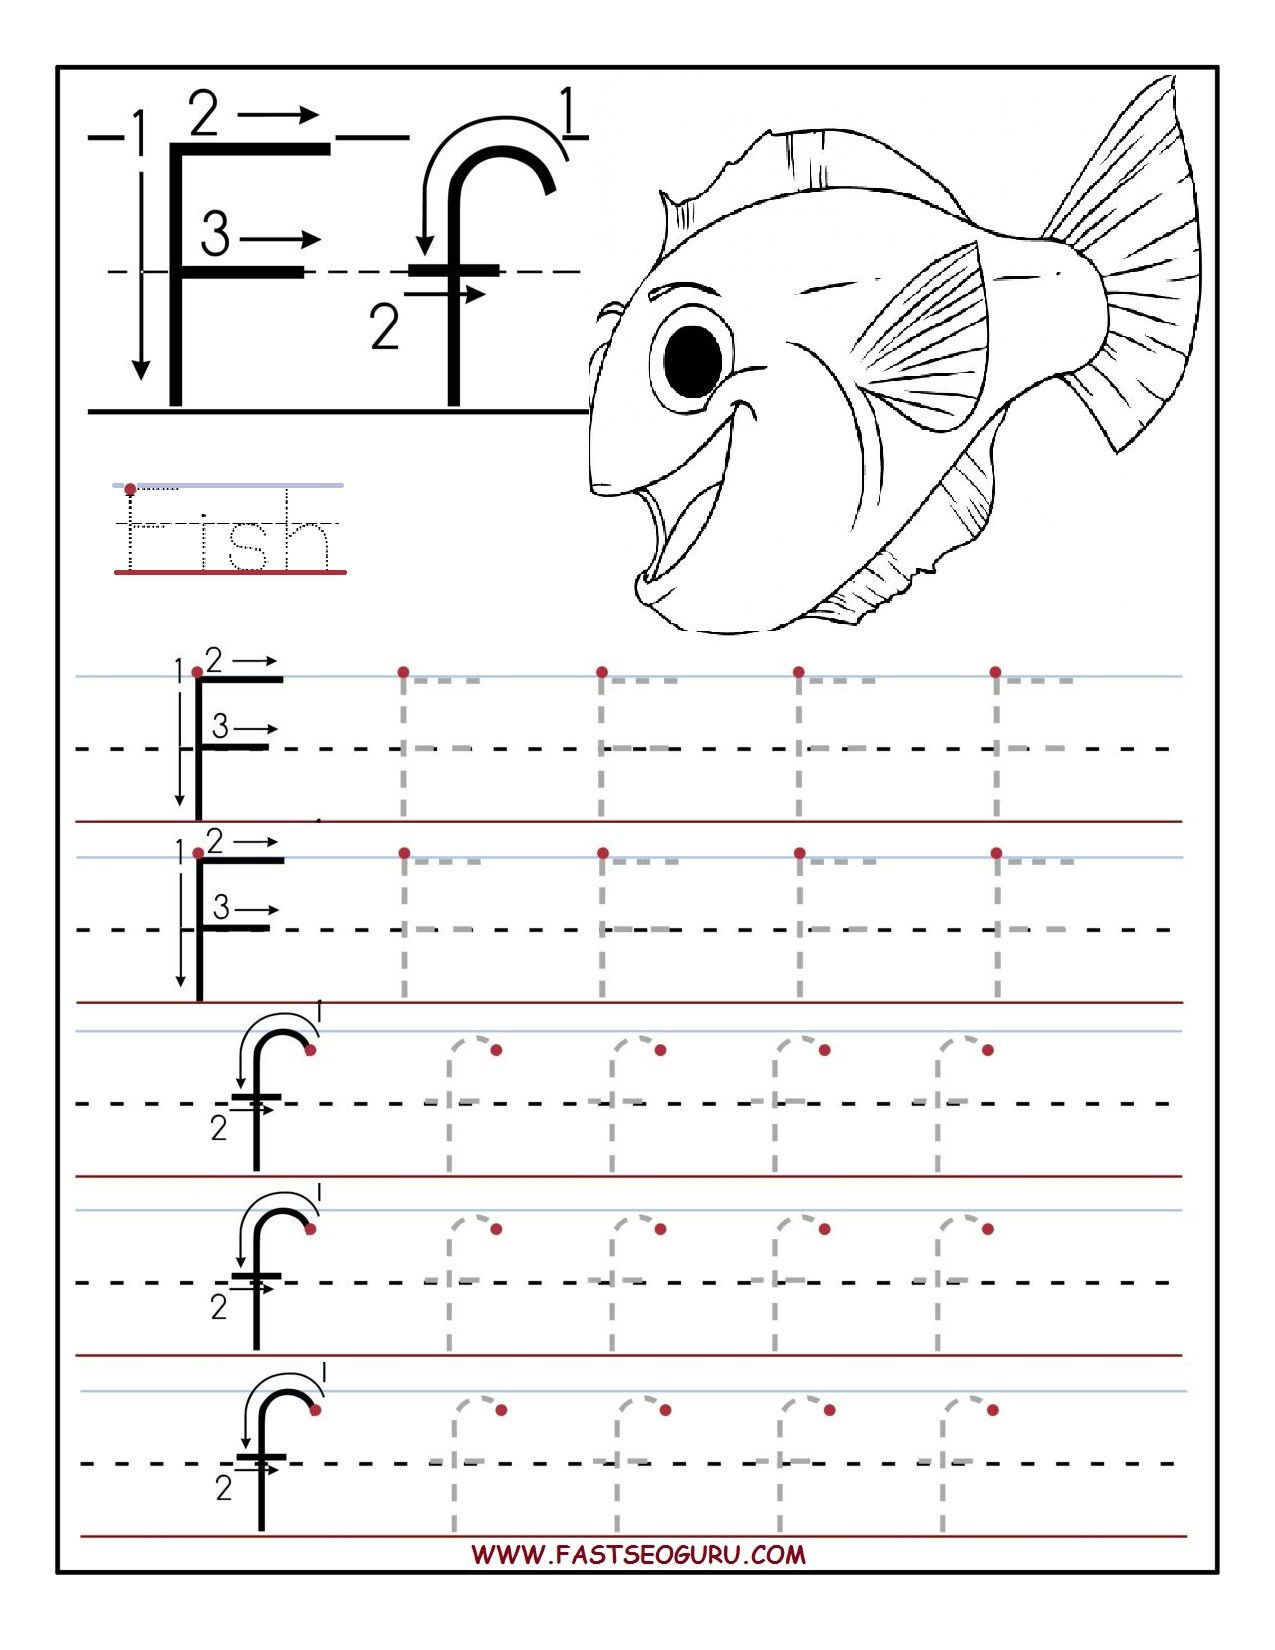 Printable Letter F Tracing Worksheets For Preschool pertaining to Letter F Tracing Printable